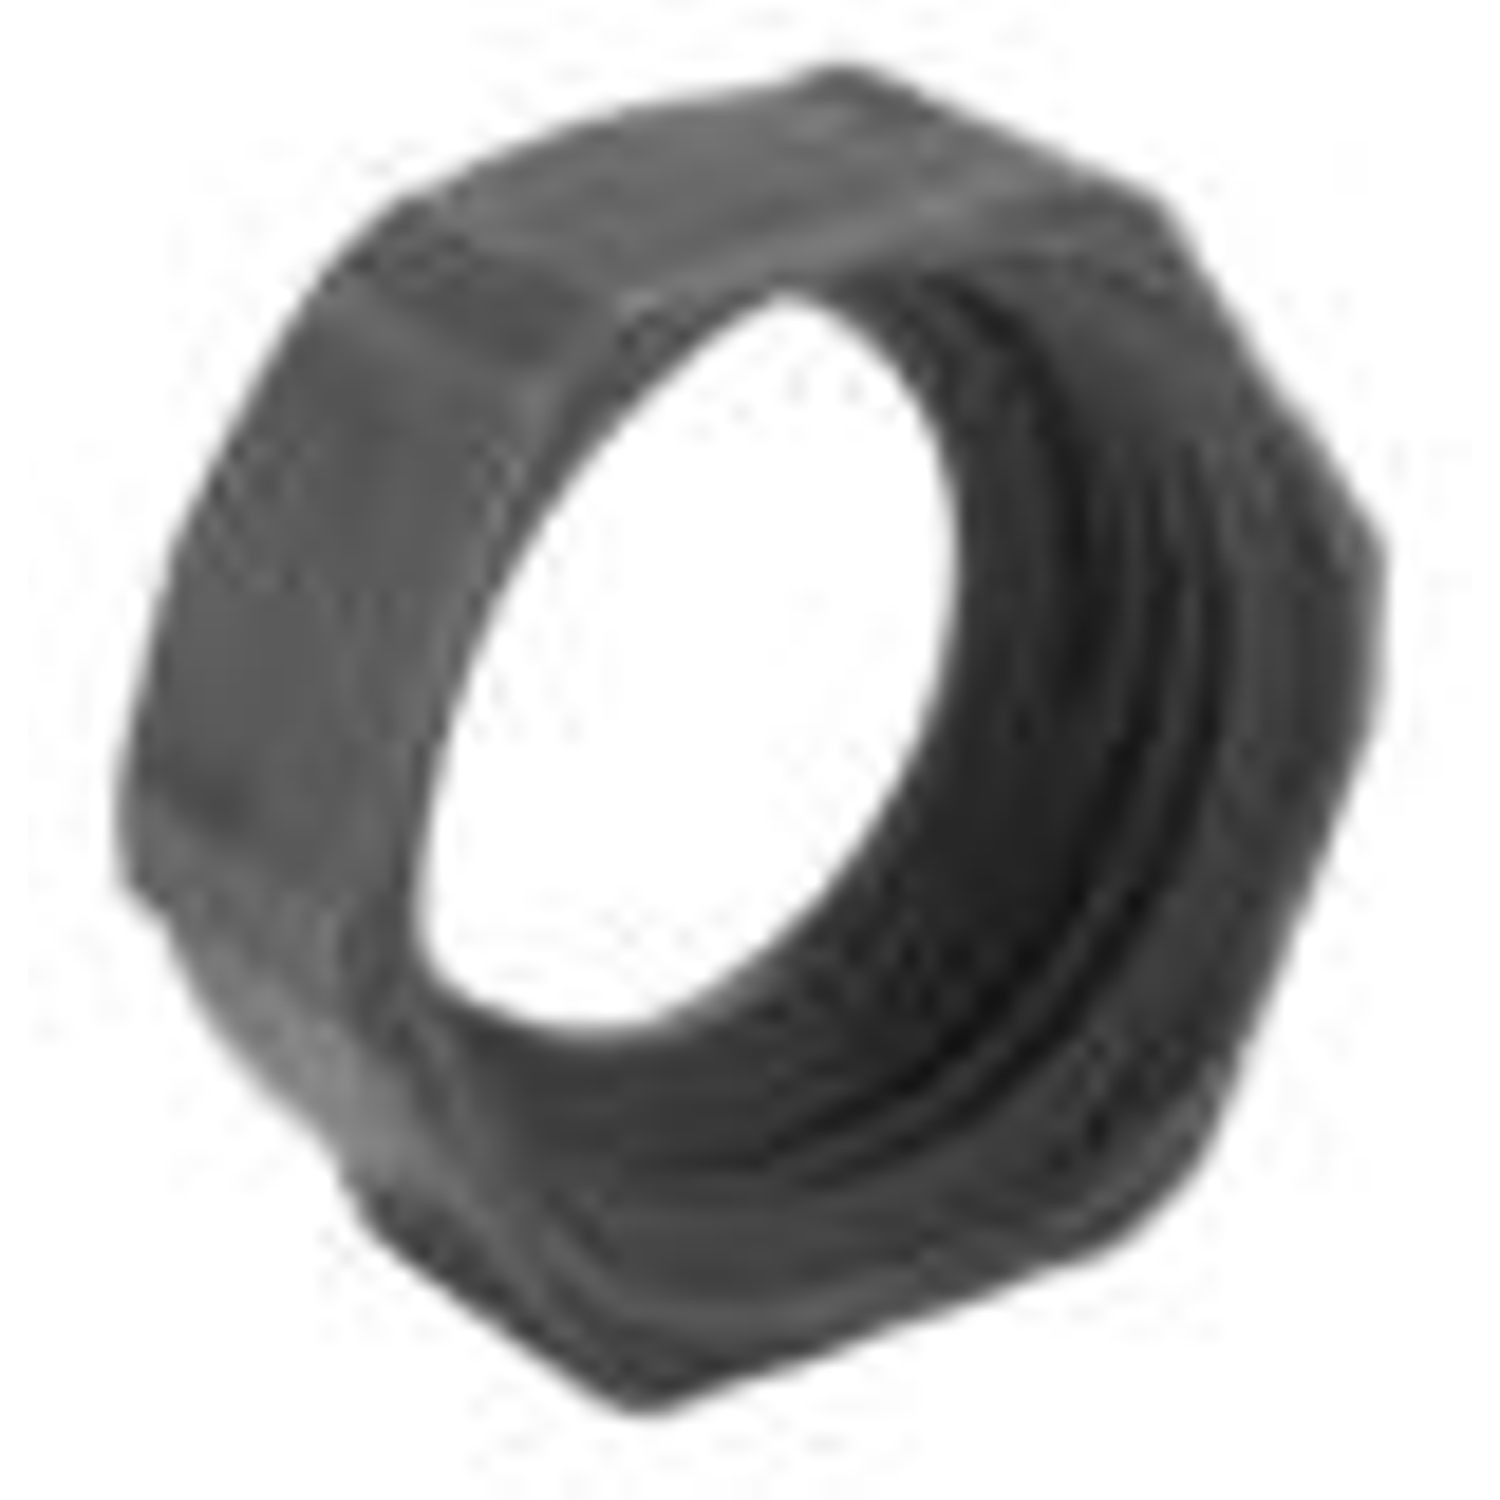 1 IN. PLASTIC BUSHING